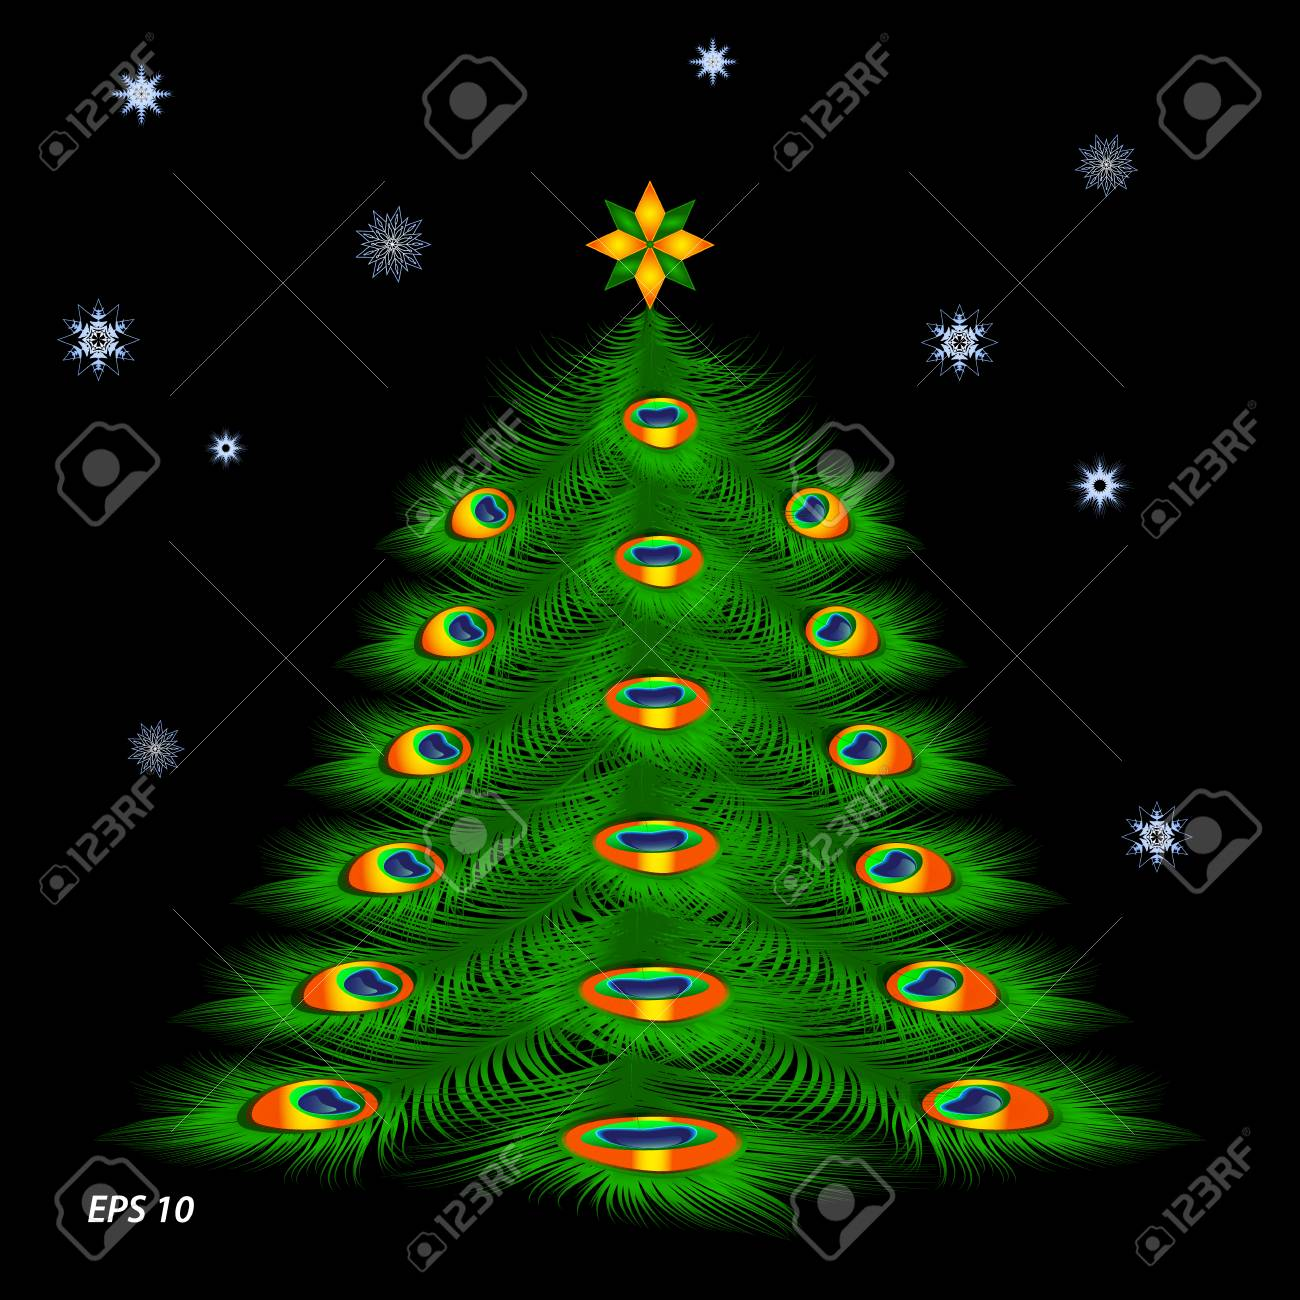 Christmas Tree With Peacock Feathers And Snowflakes On Black Royalty Free Cliparts Vectors And Stock Illustration Image 89165994